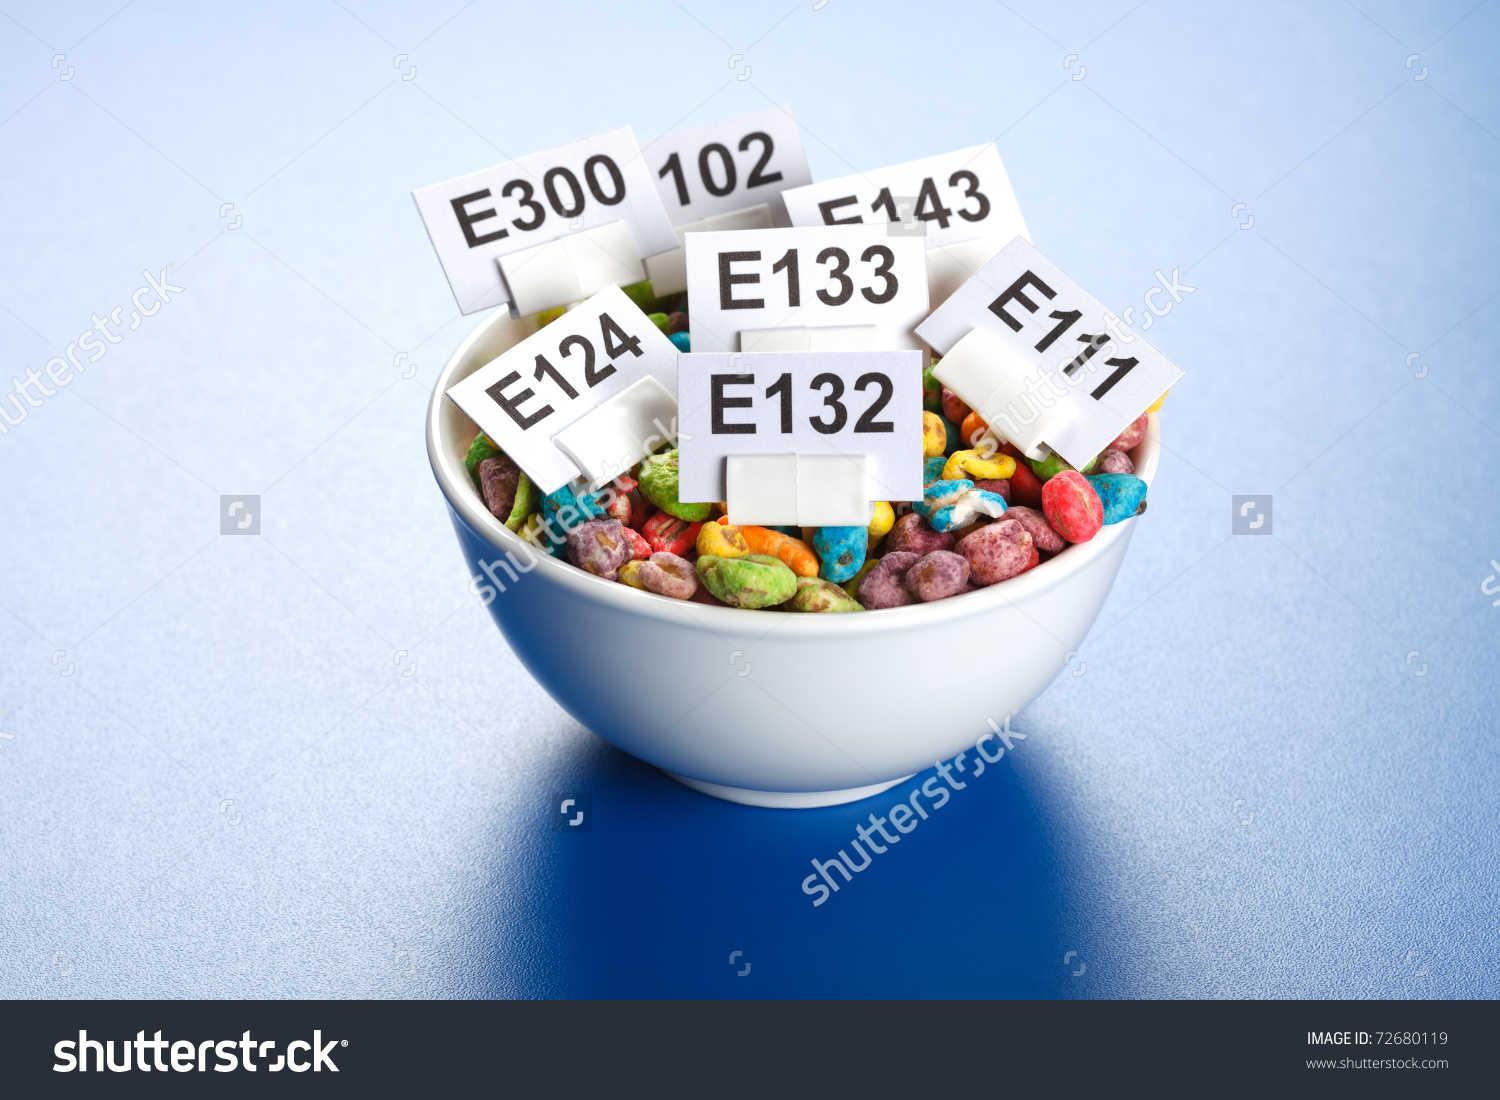 Additives clipart.